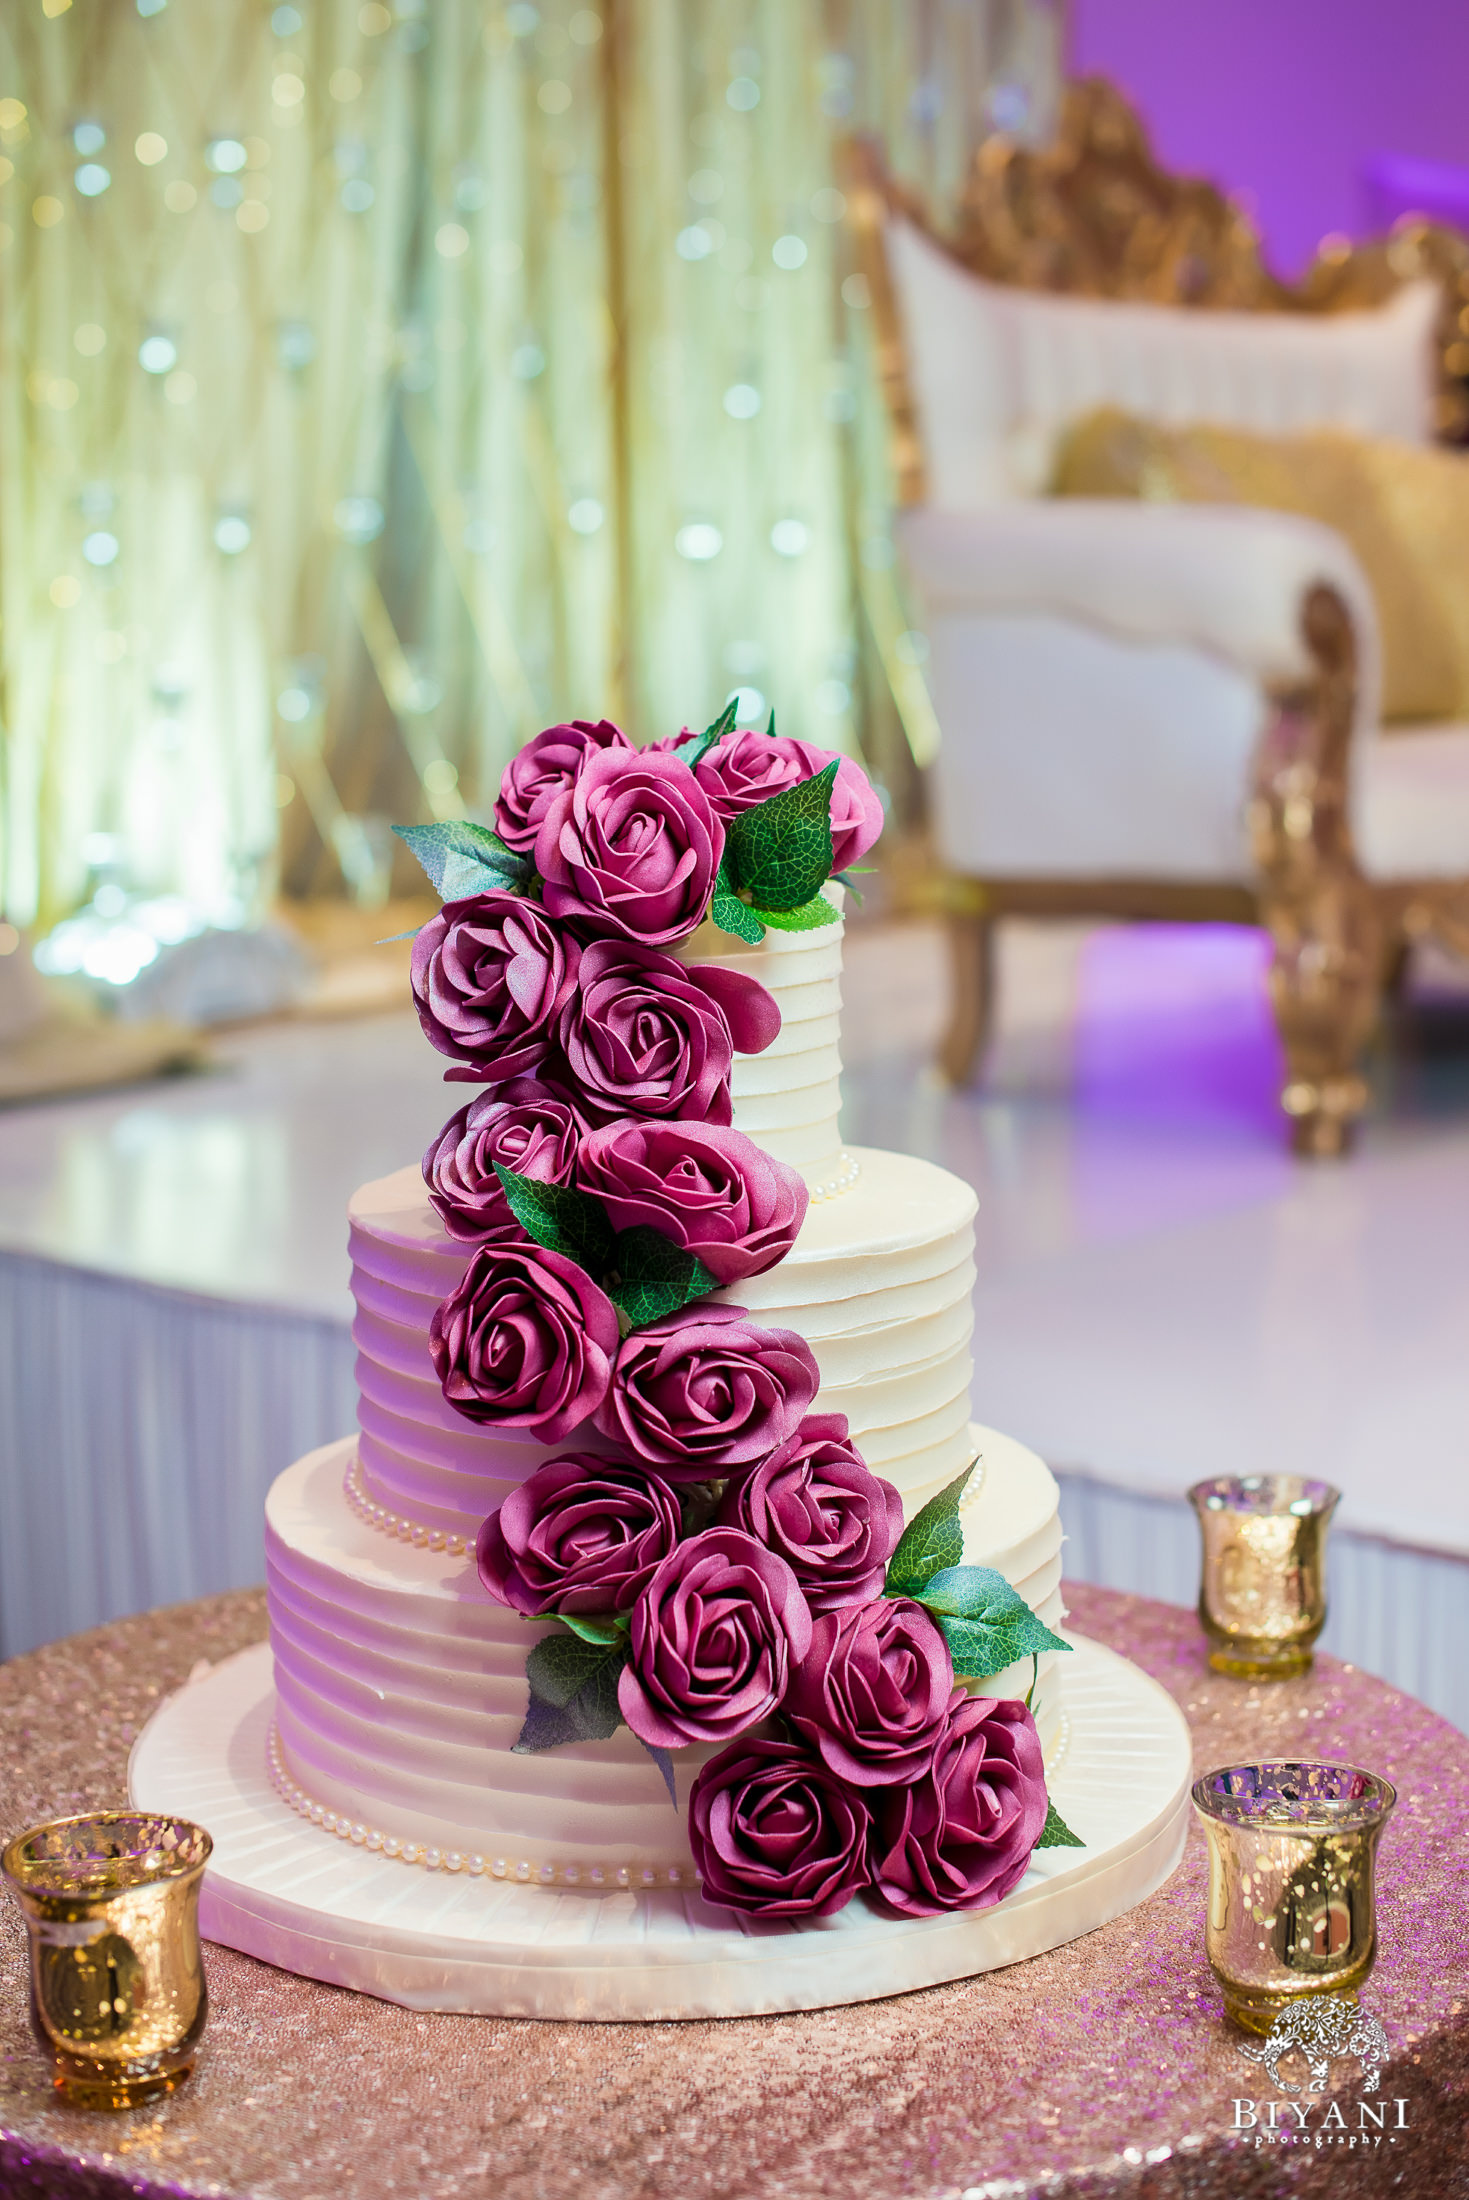 cake decorated with pink icing roses at the reception